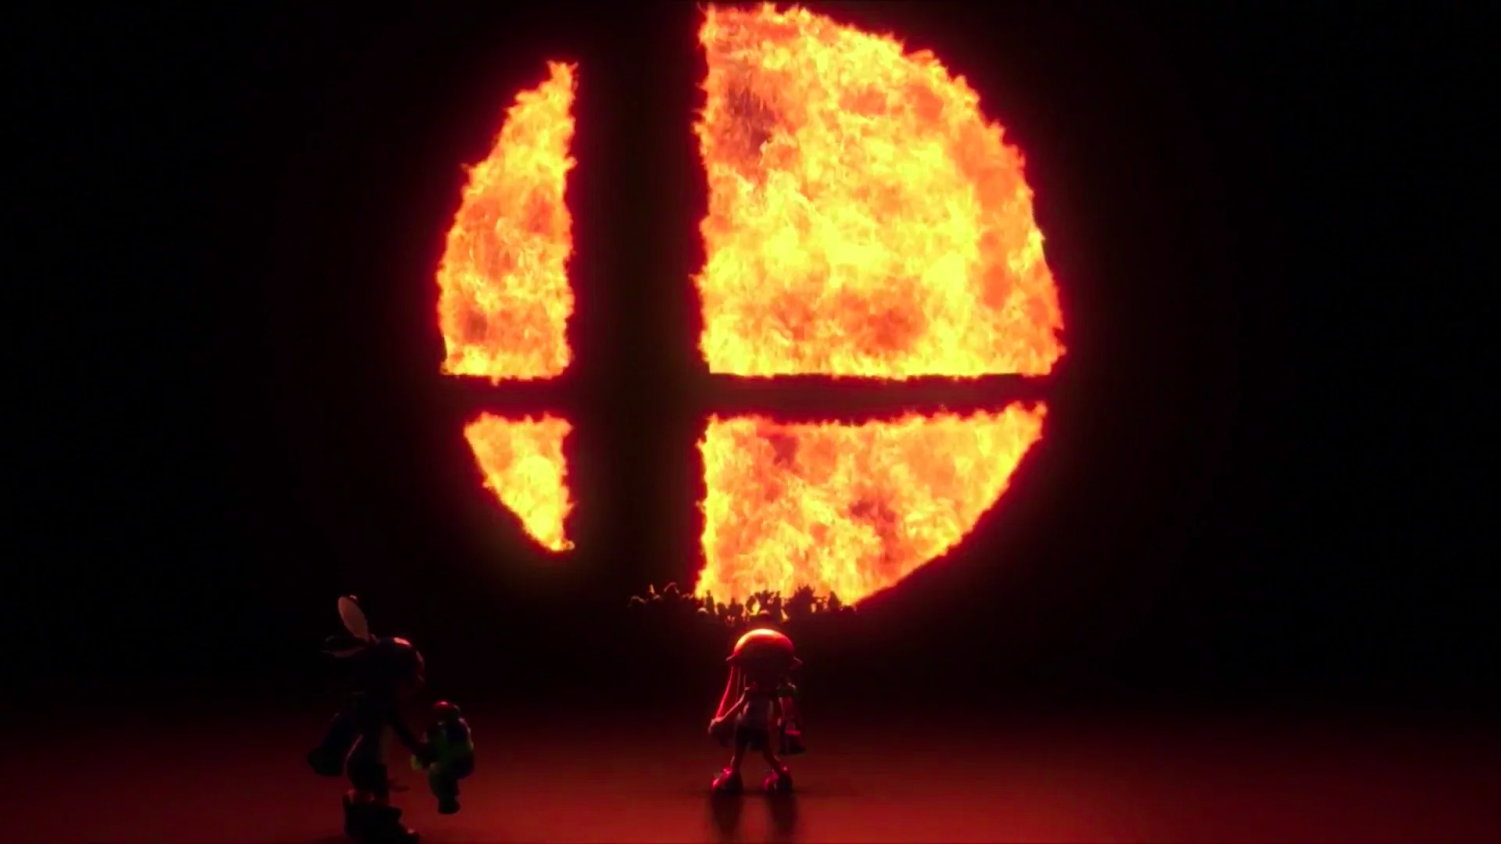 The iconic Smash symbol shows up at the end of the trailer.